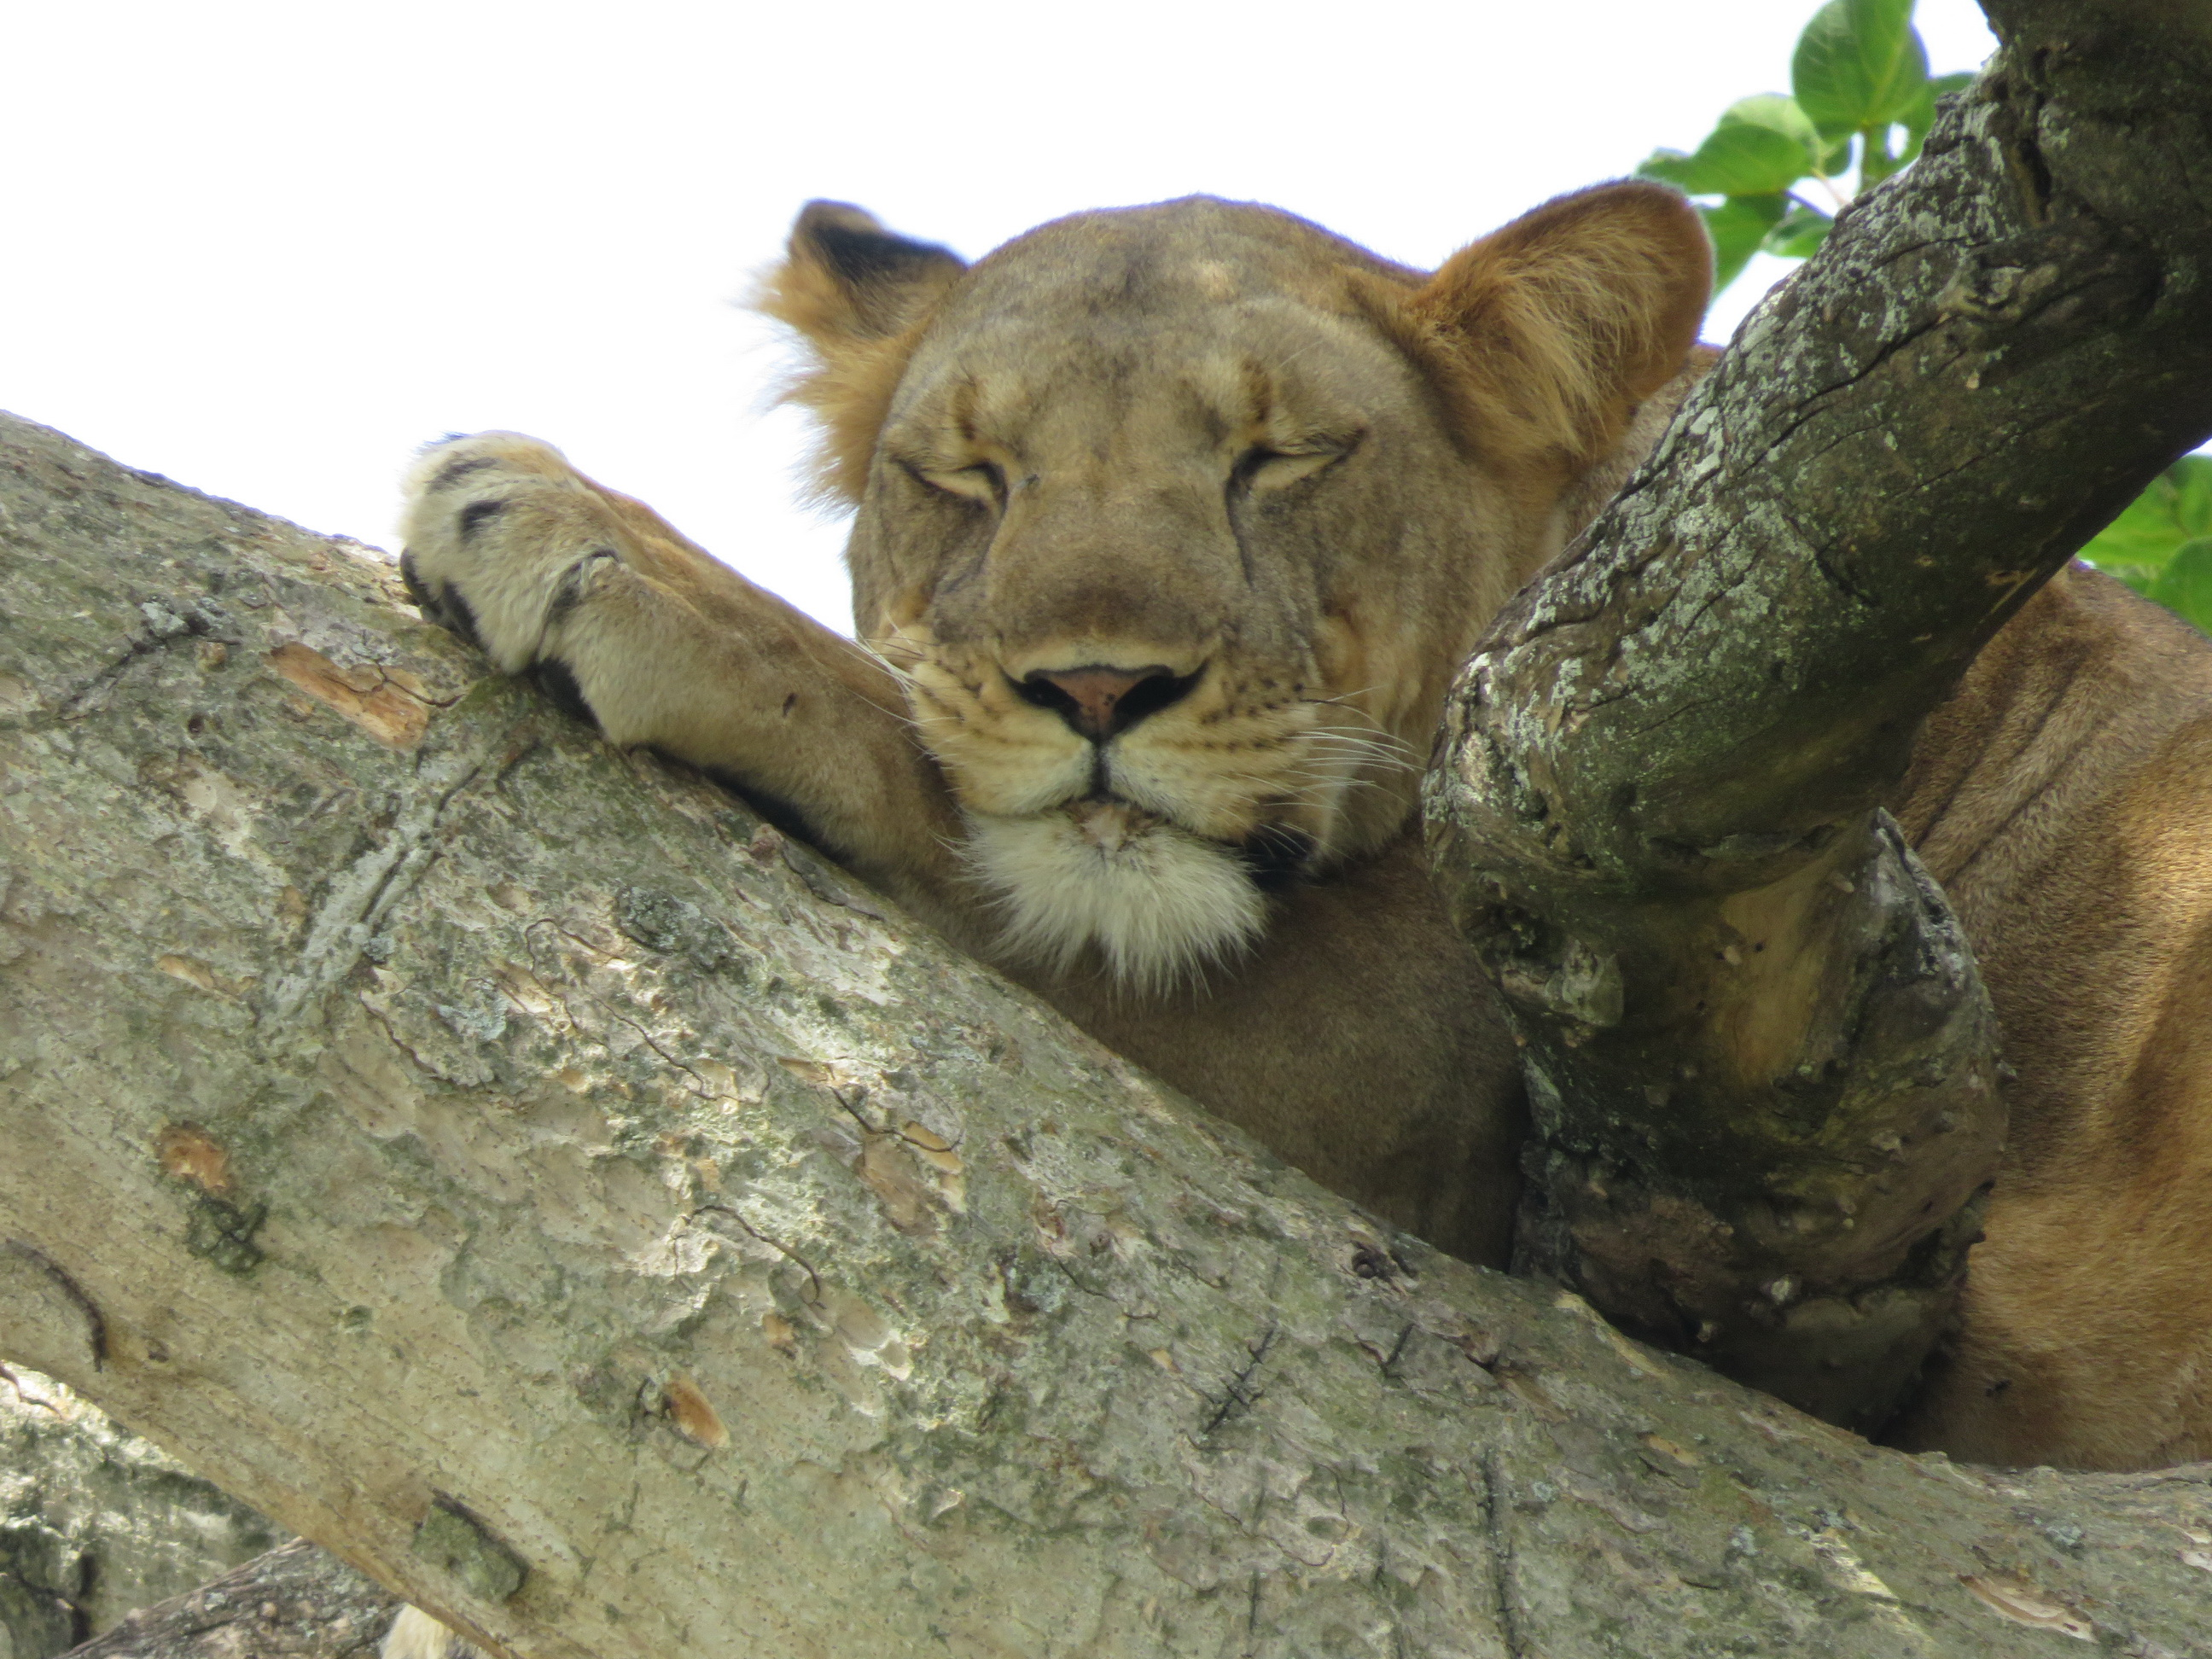 Lioness in a tree in Uganda, by Vivienne Lewis